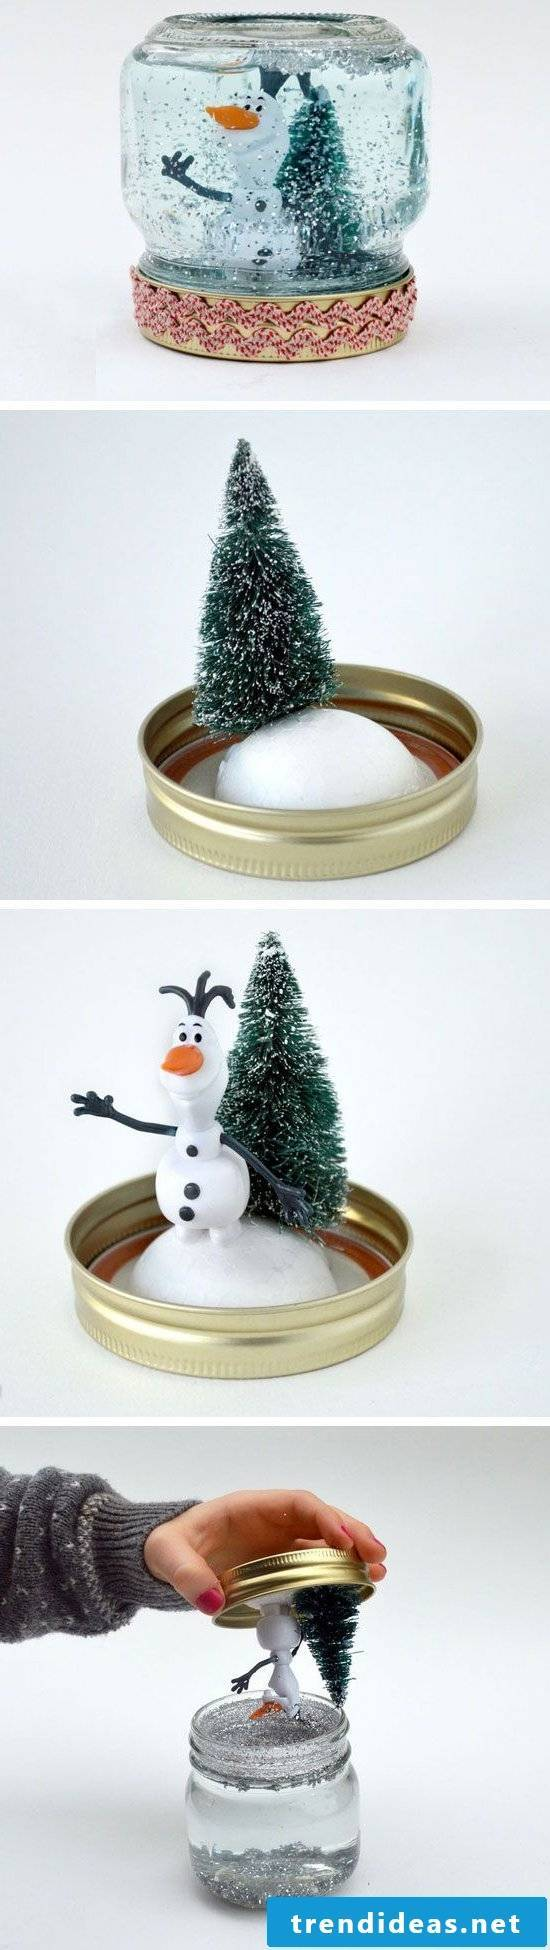 Snow globes as craft ideas for Christmas